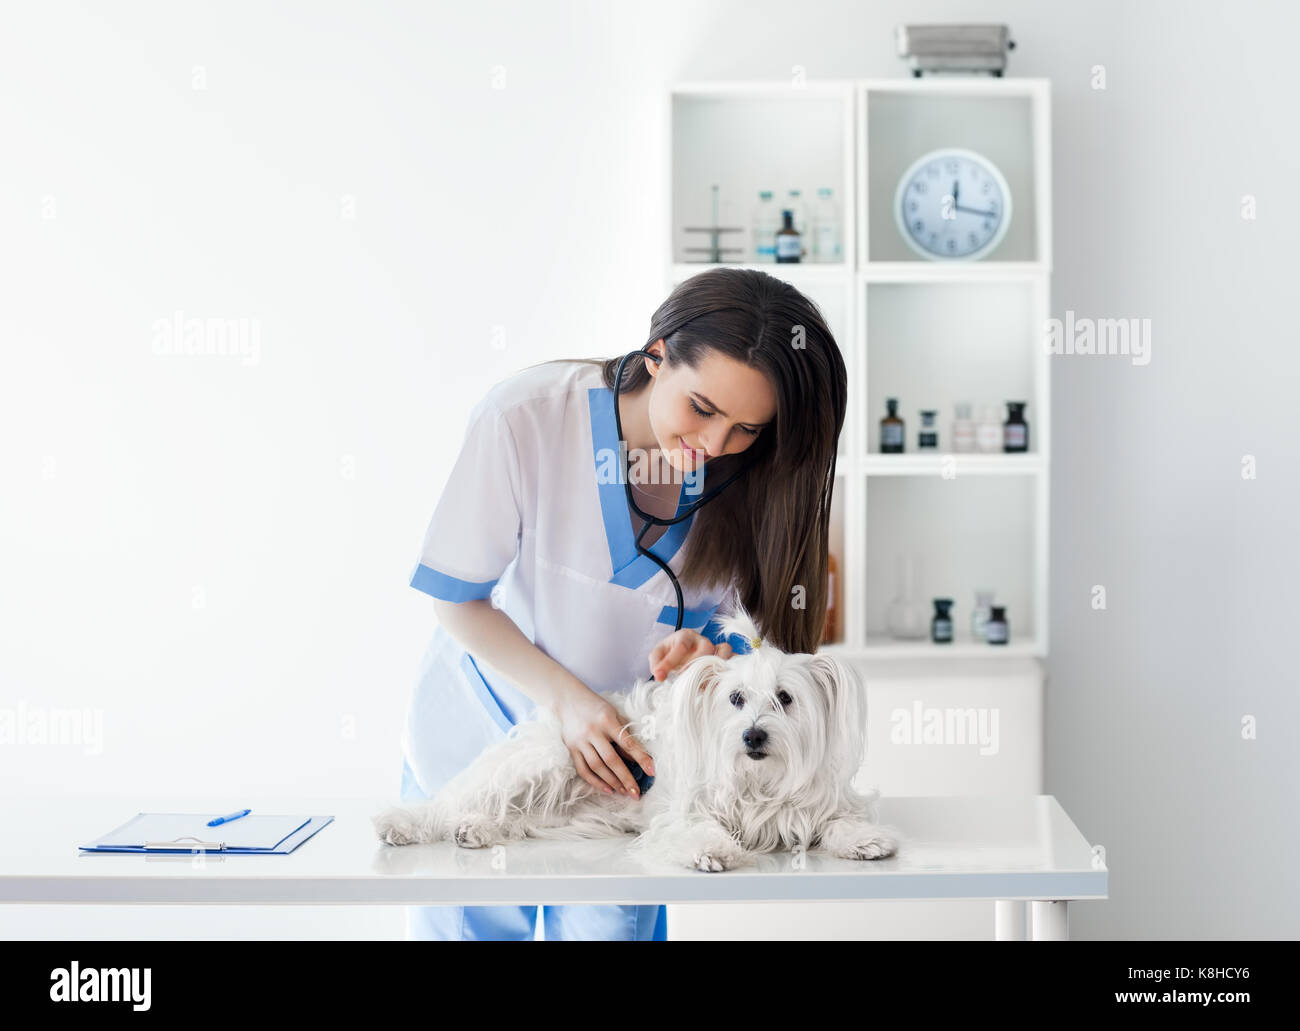 Beautiful smiling veterinarian doctor examining cute white dog in clinic - Stock Image